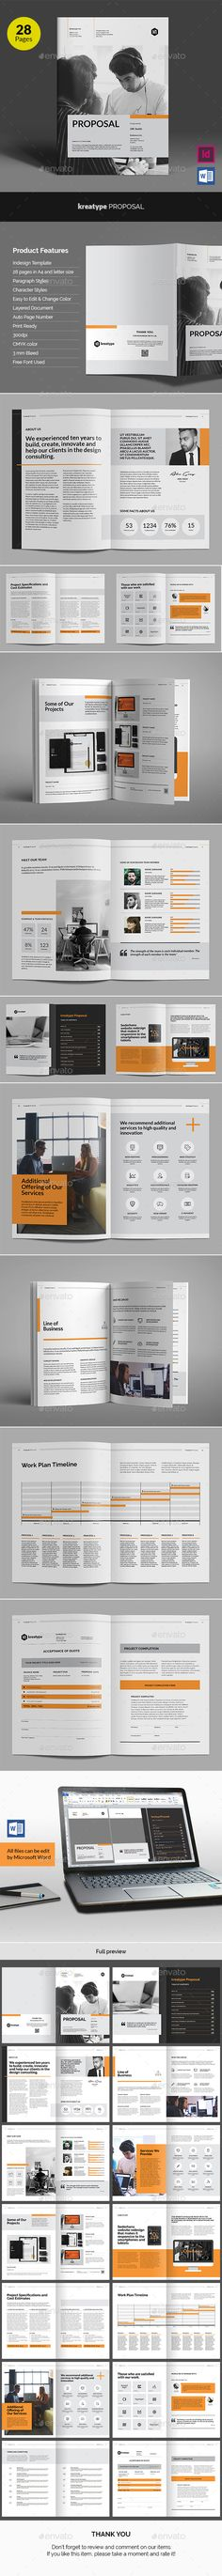 TM Company Profile Template InDesign INDD A4 Company Profile - it company profile template